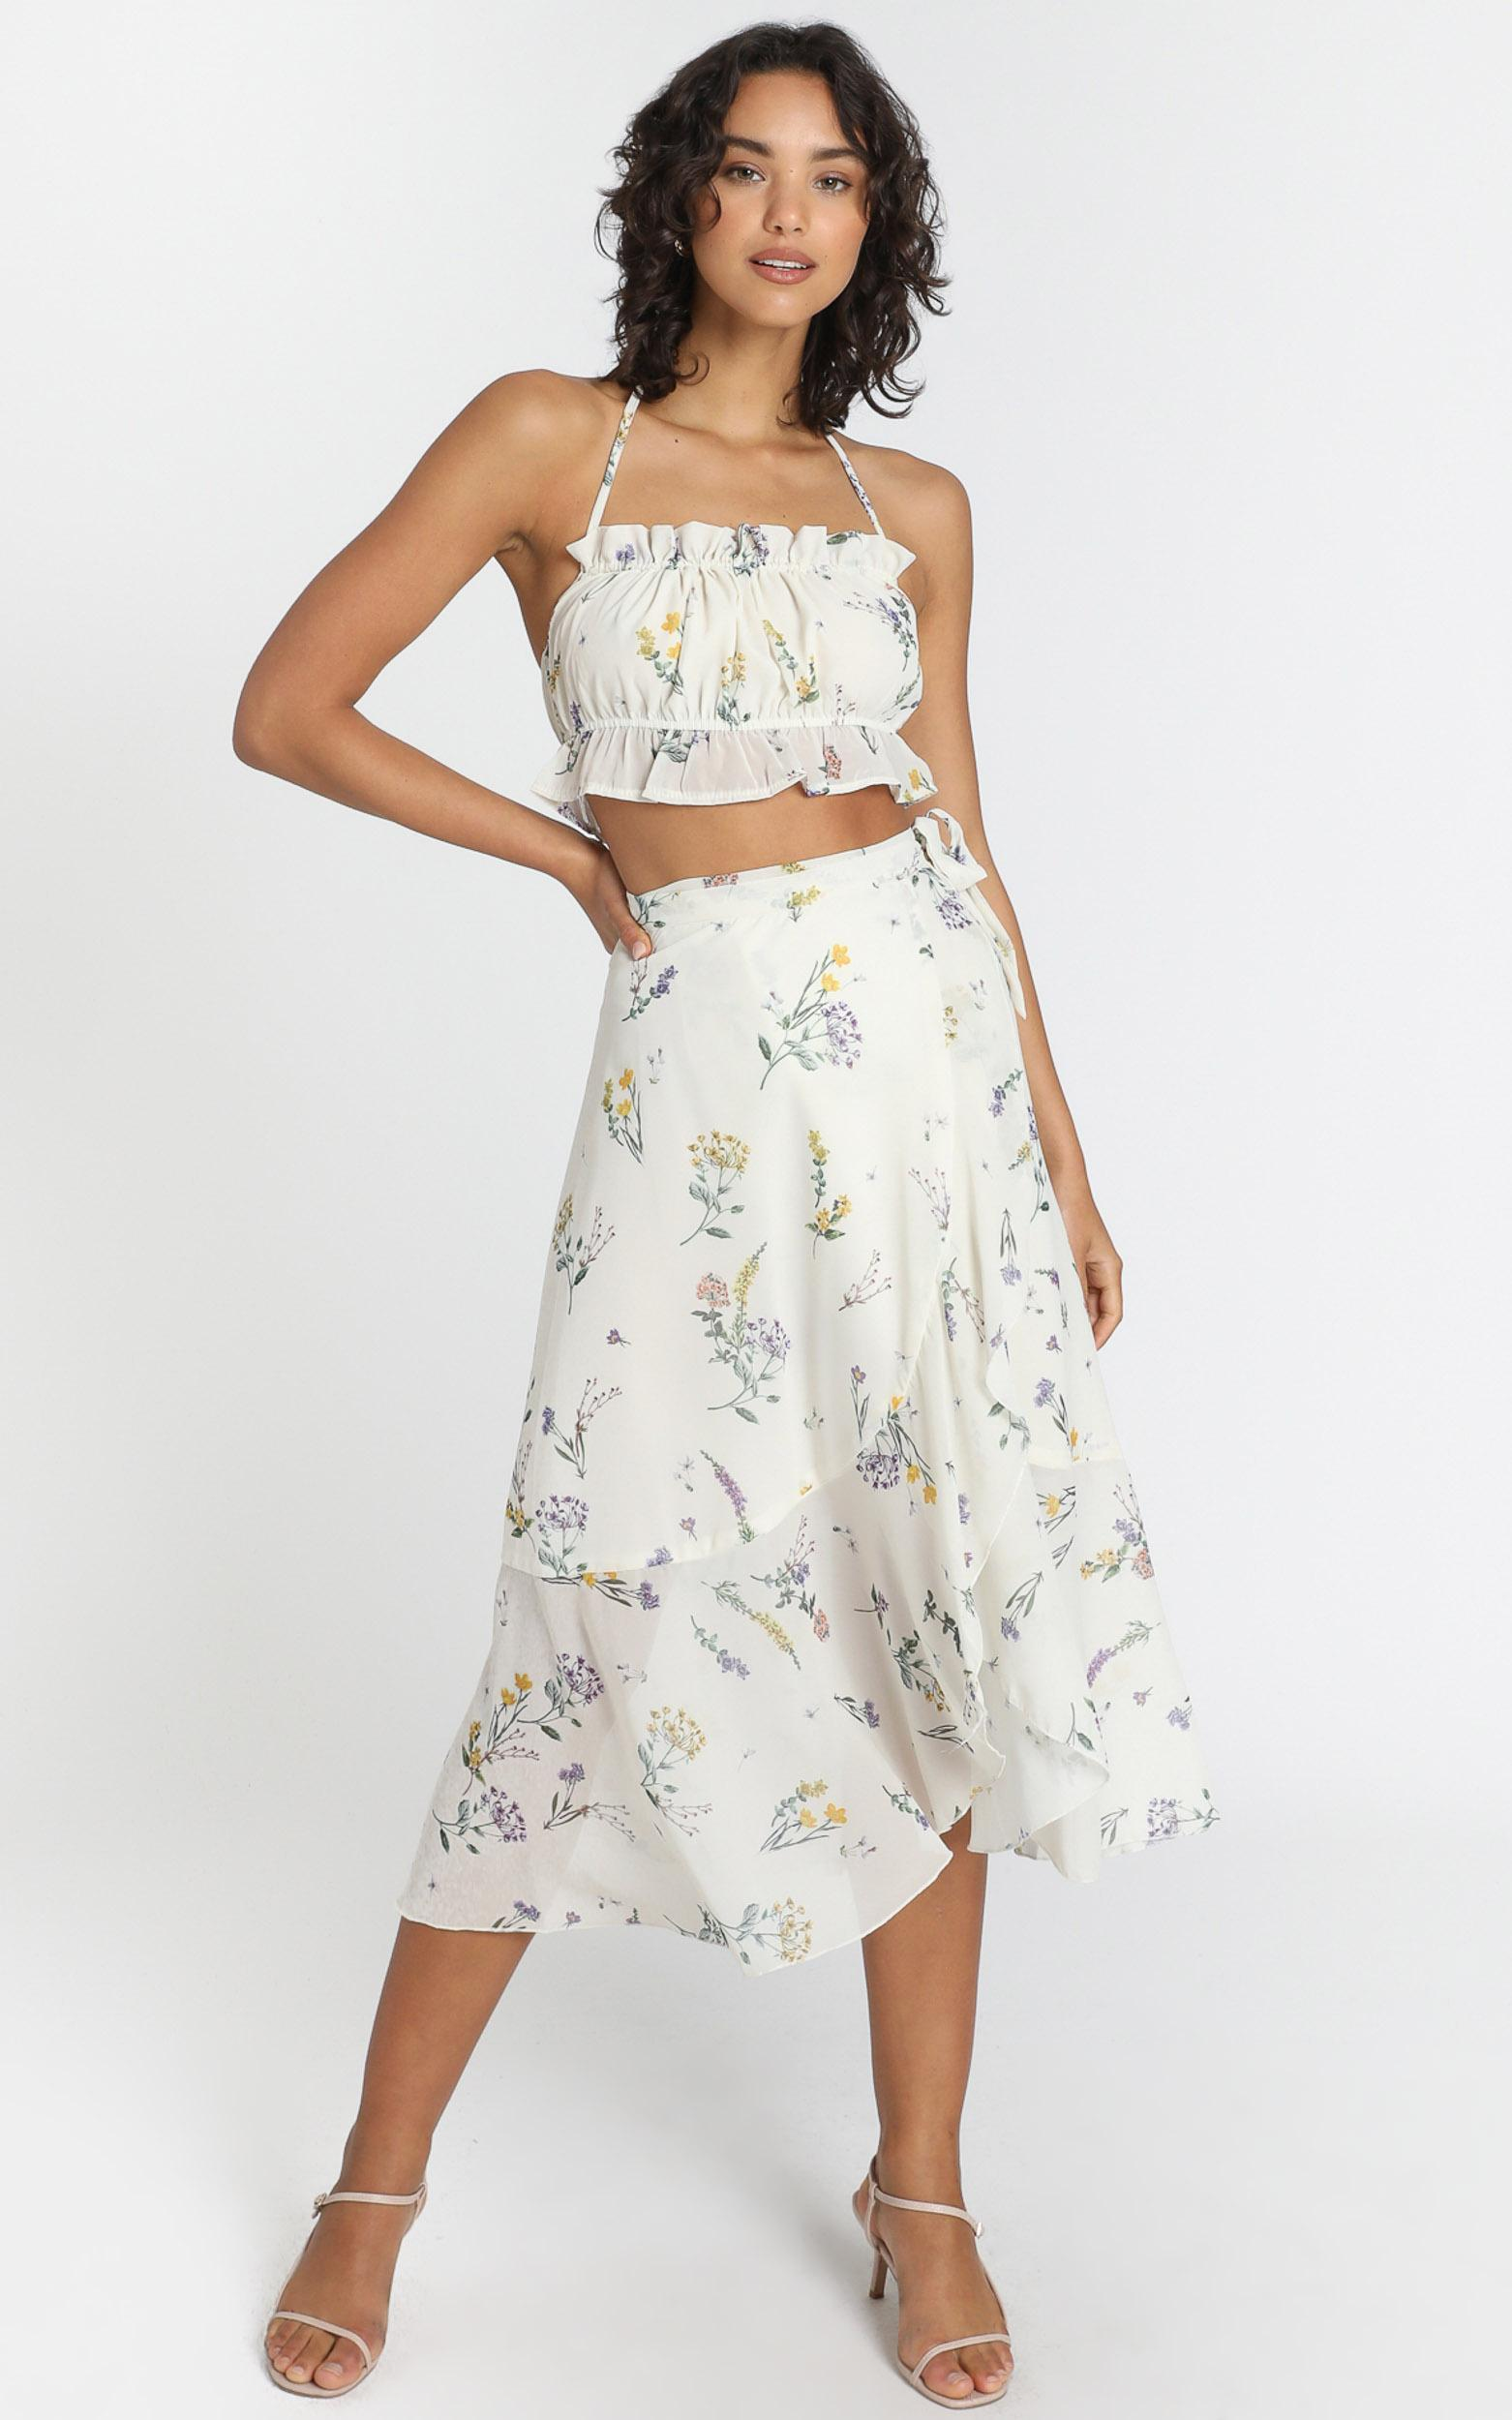 Add To The Mix Skirt In botanical floral - 4 (XXS), Cream, hi-res image number null